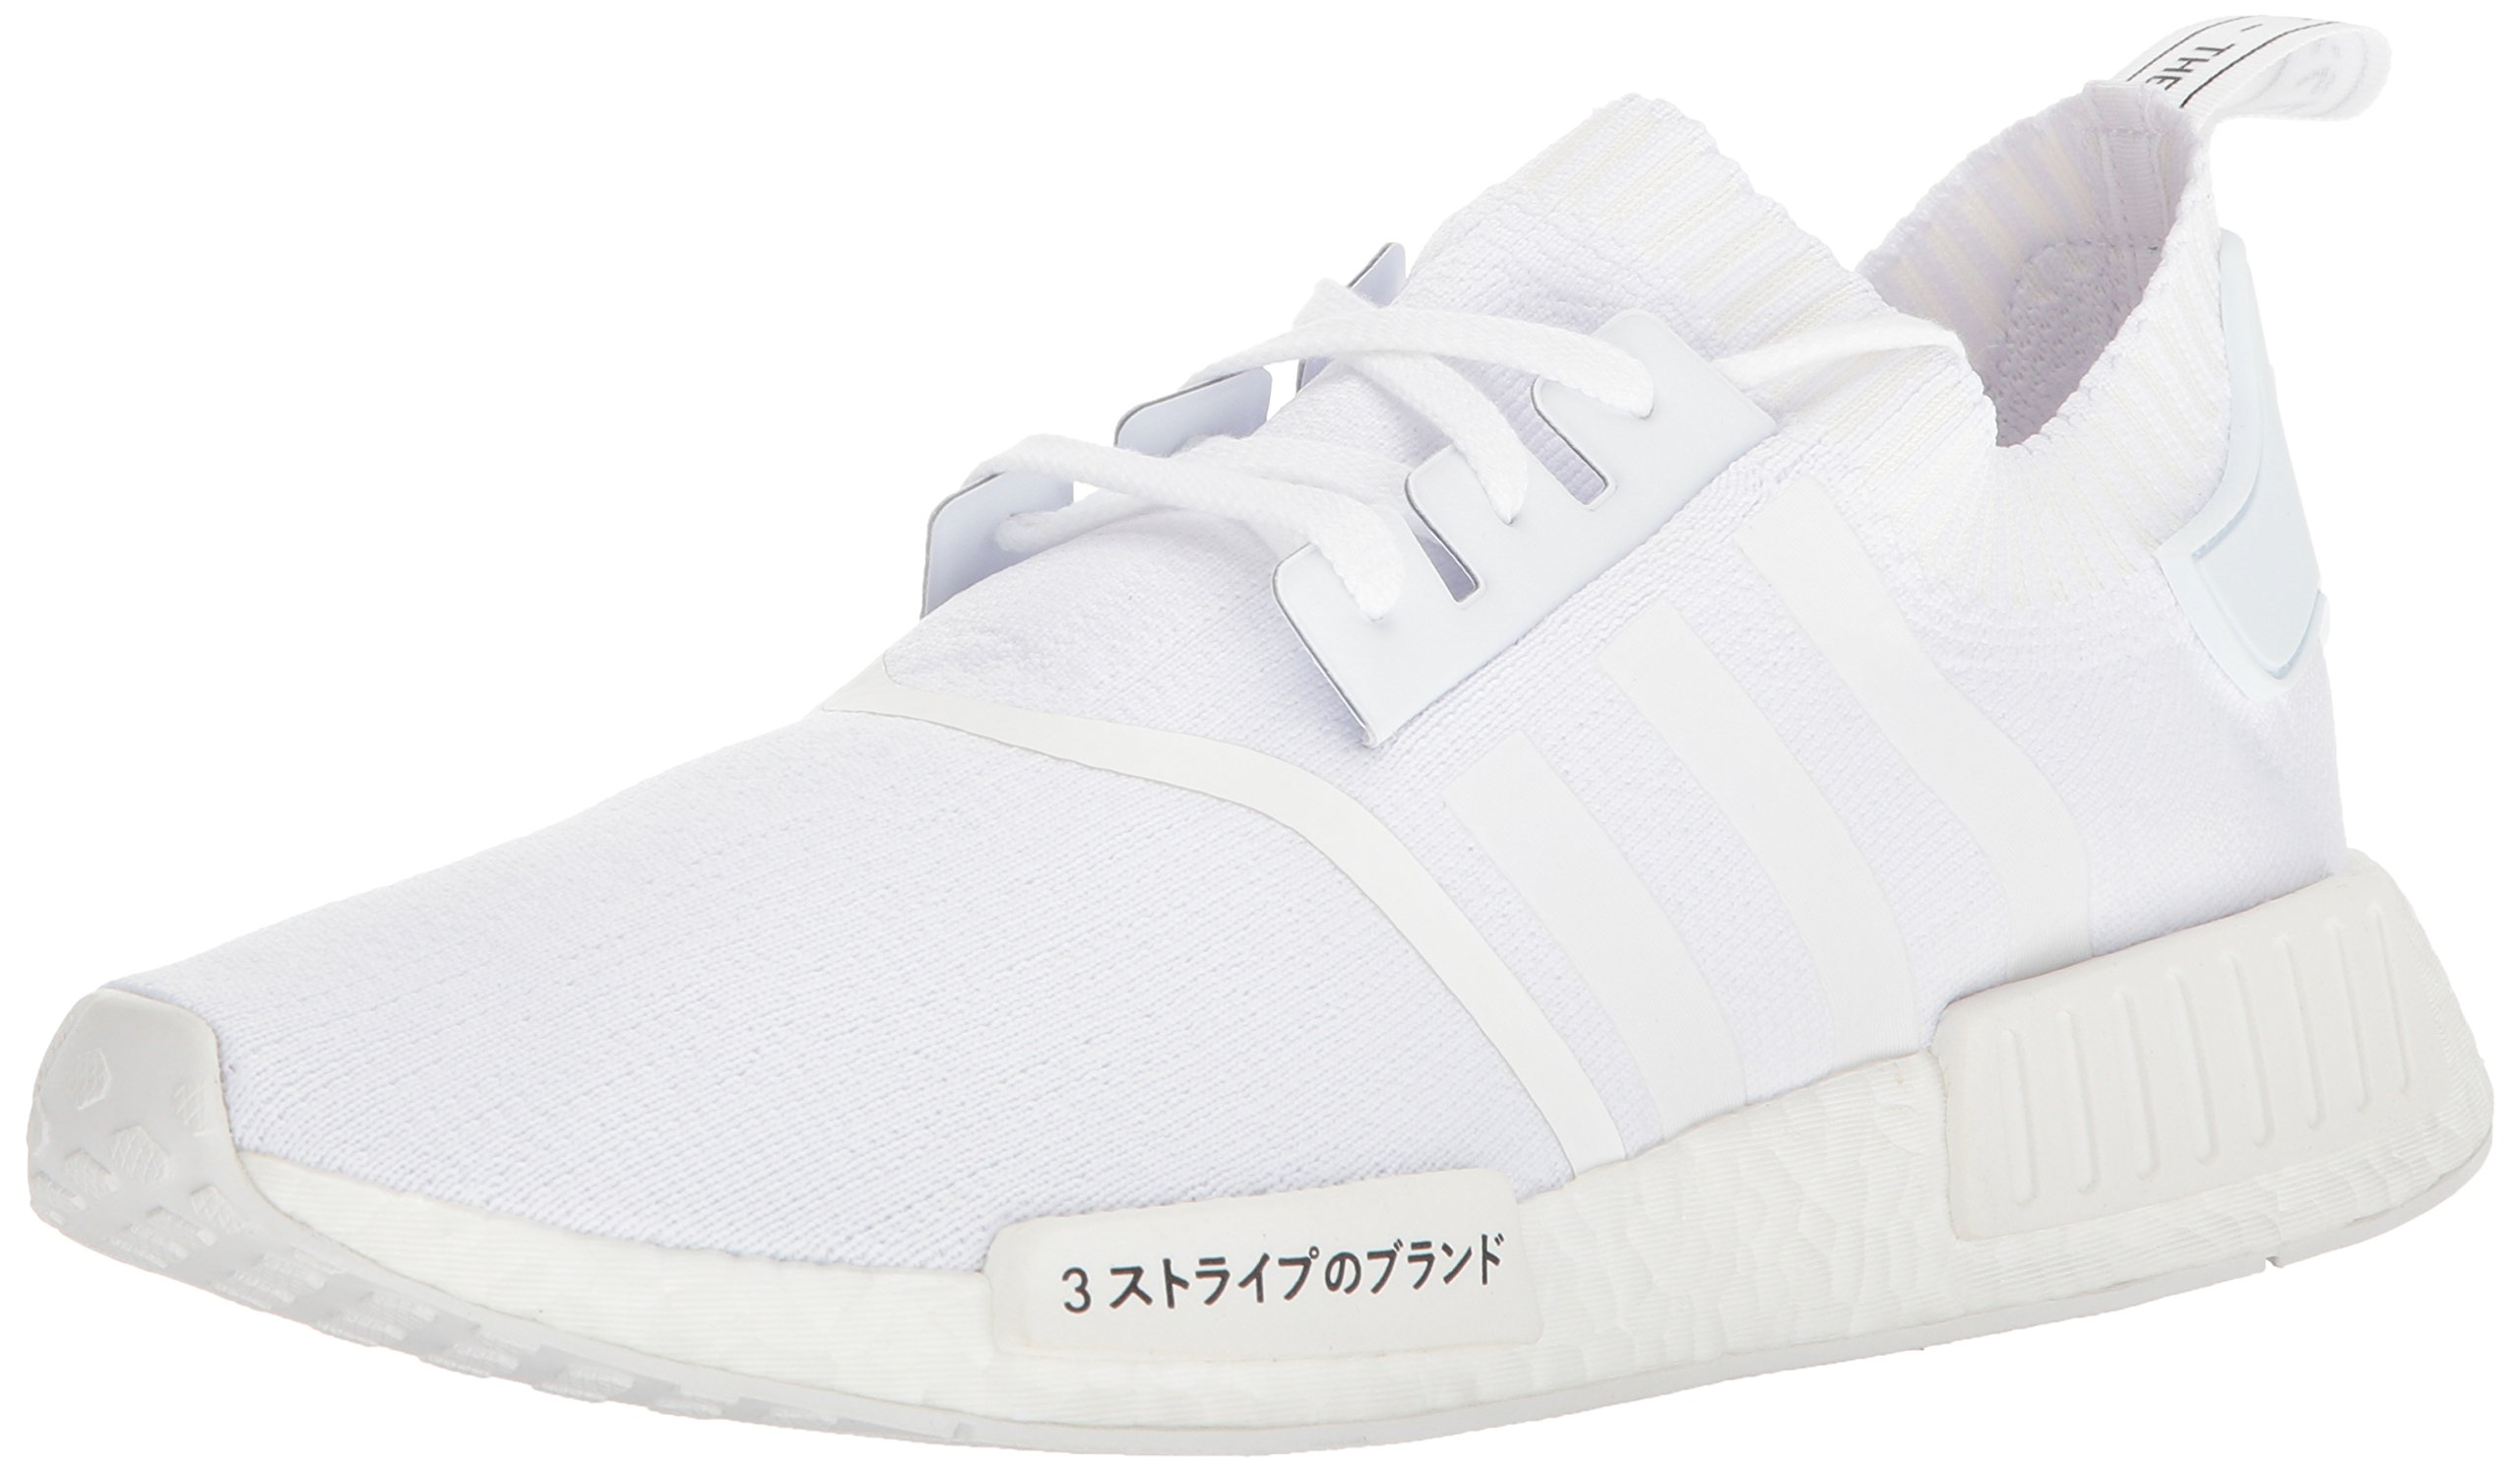 info for 72aea a6ea0 Galleon - Adidas NMD R1 Prime Knit Japan Boost BZ0221 White